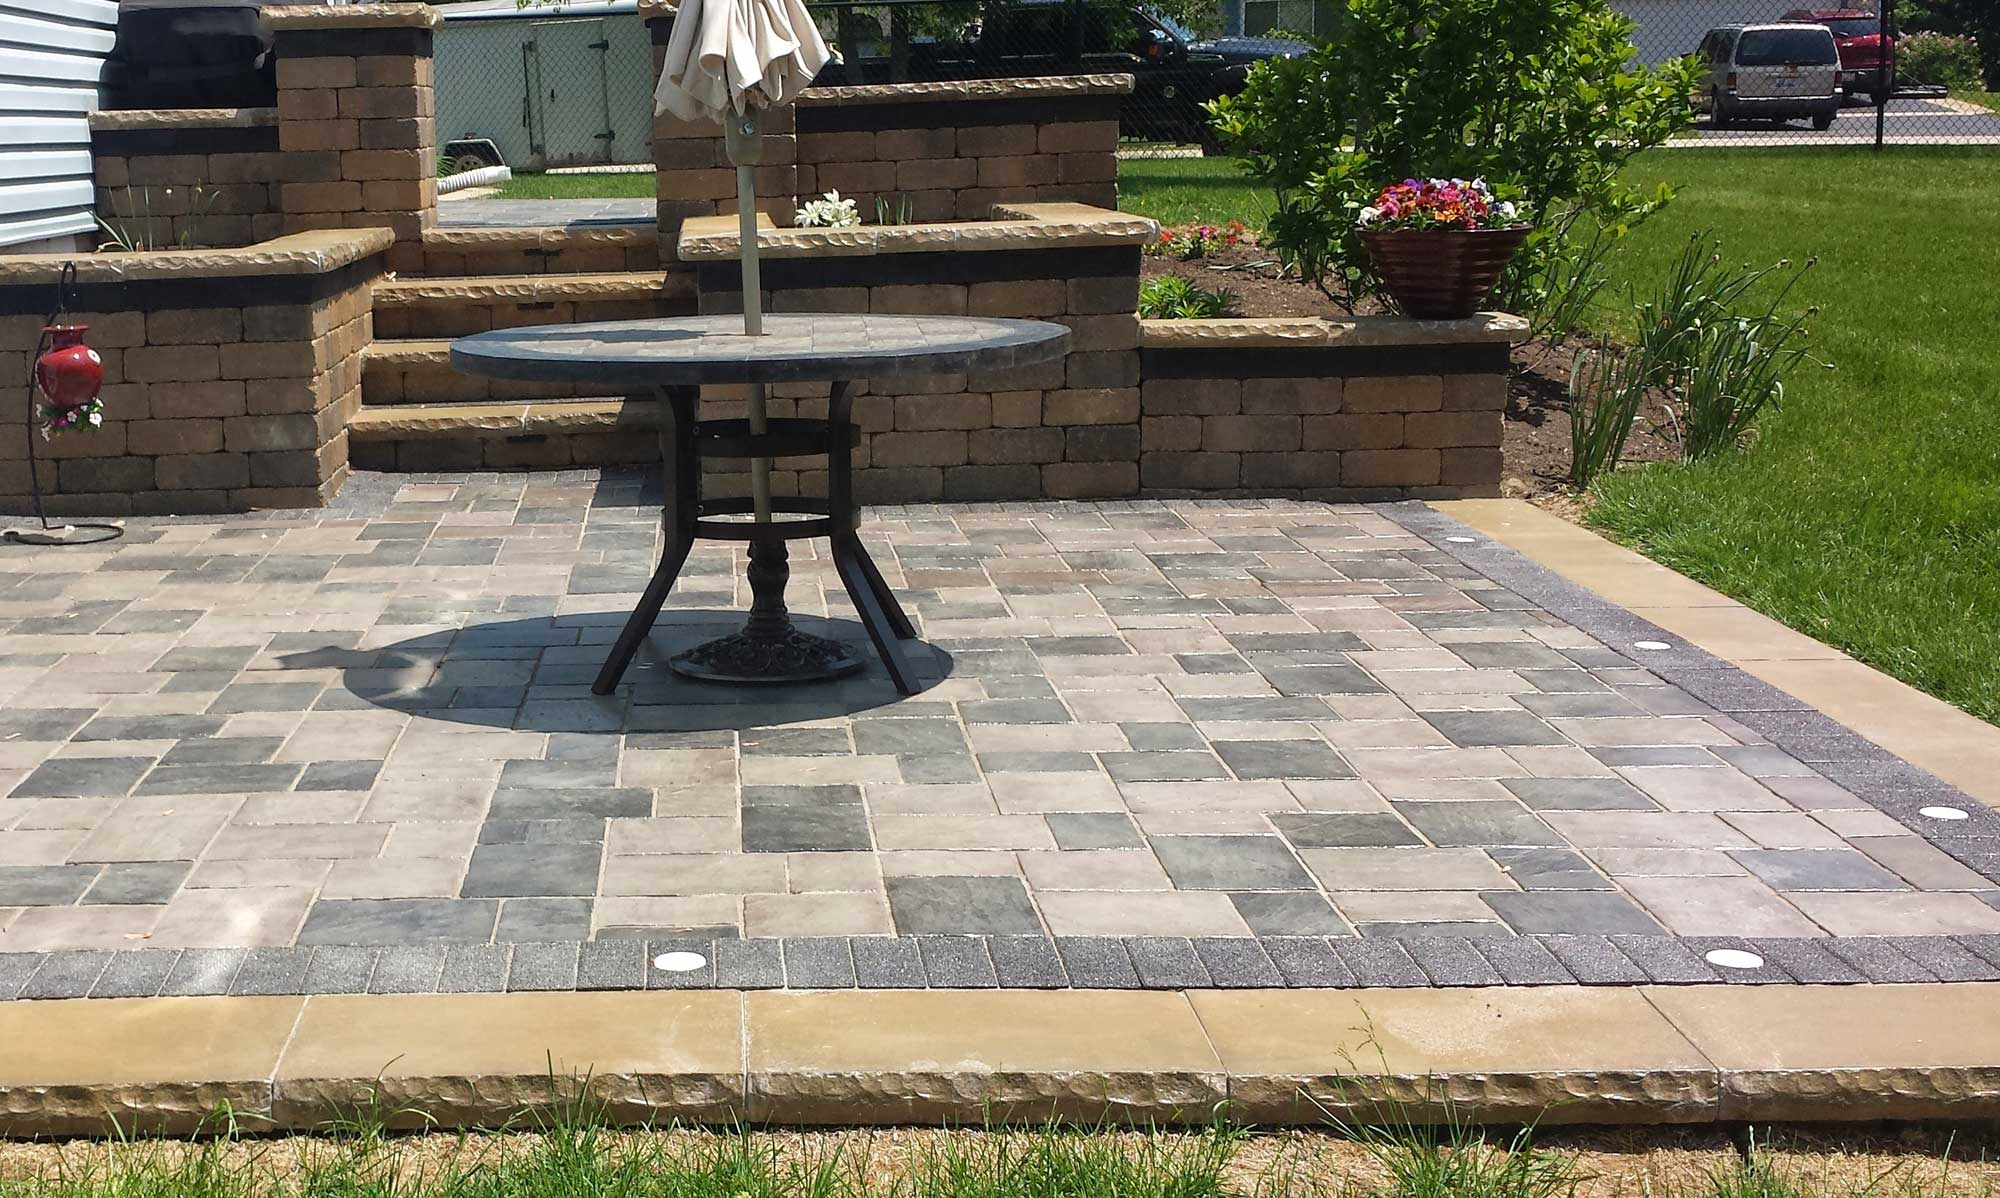 Brick Paver Steps_patio. Curved_walkway_sitting_area.  Unique_shaped_patio_design. Brick_paver_porch_steps_walkway